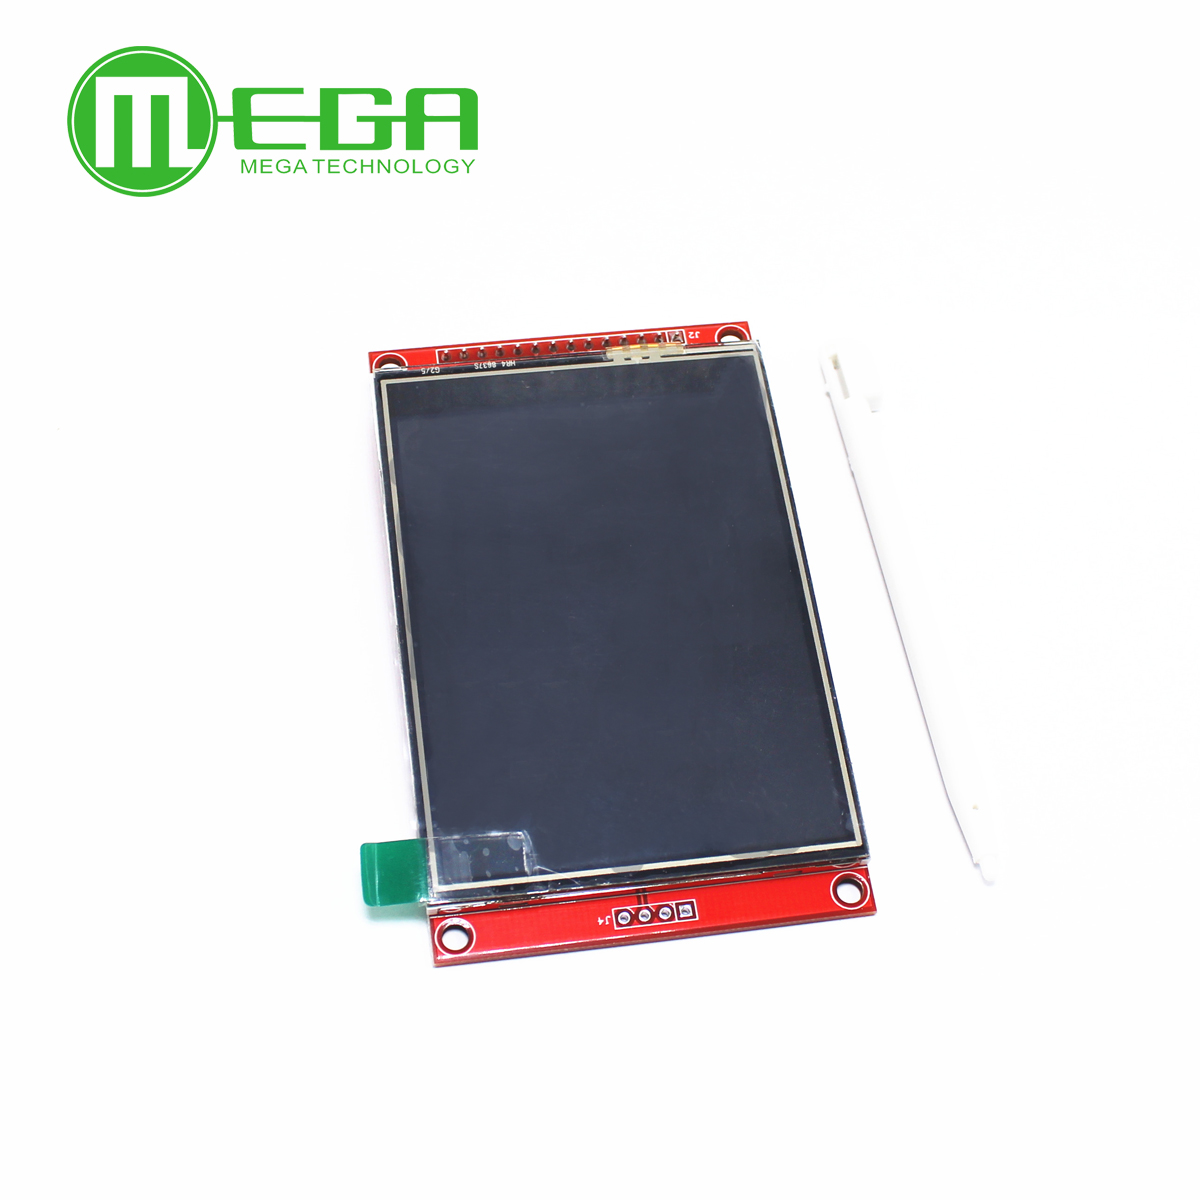 New 3.2 inch 320*240 <font><b>SPI</b></font> Serial <font><b>TFT</b></font> LCD Module Display Screen with Touch Panel Driver IC ILI9341 for <font><b>Arduino</b></font> MCU image